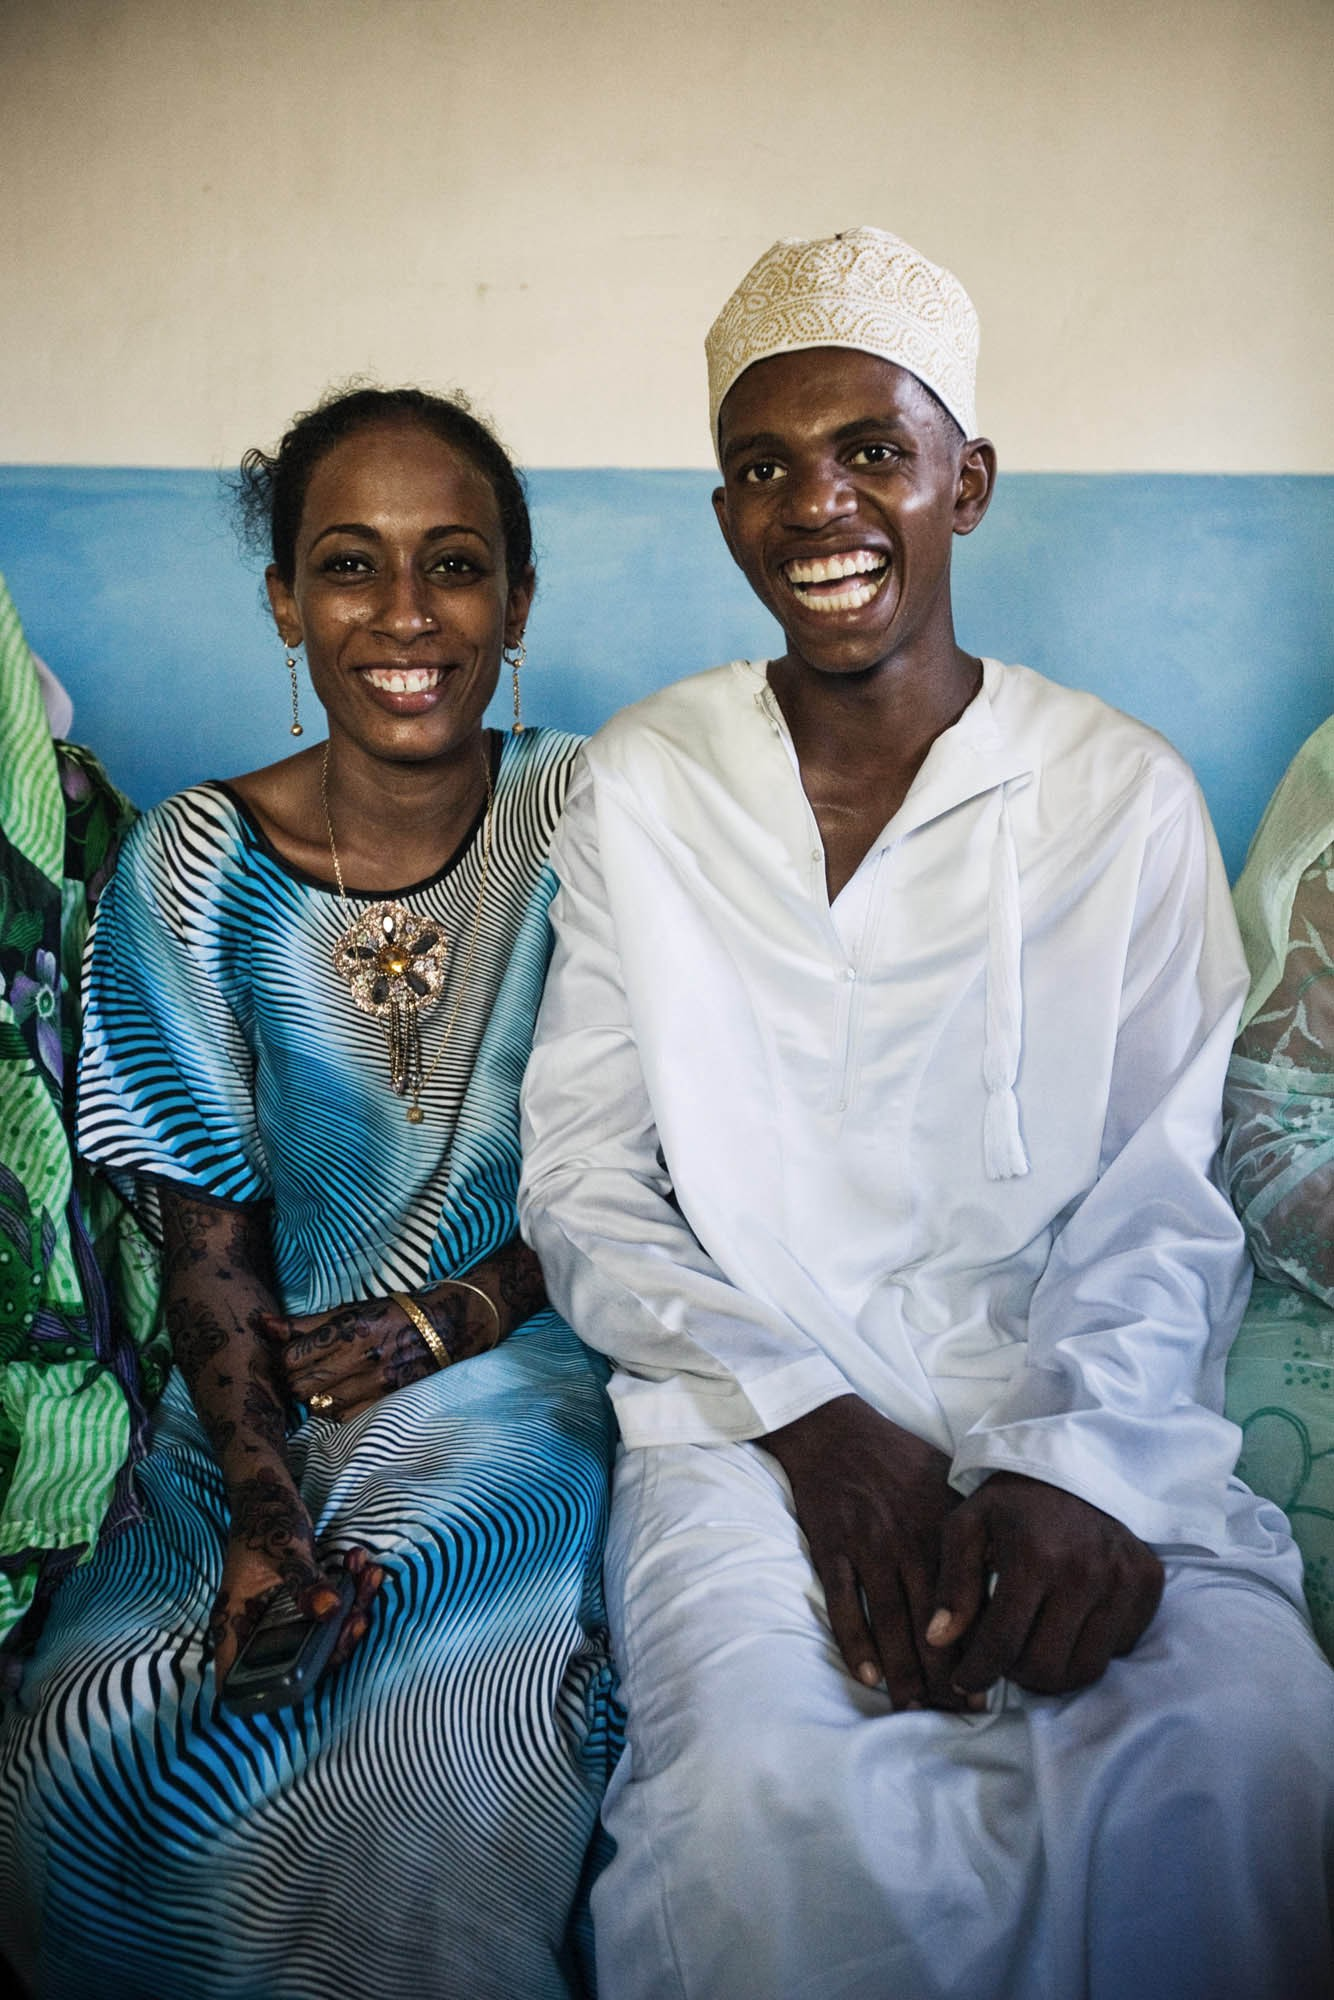 Newlyweds Tima Adnan and Ali Mohammed at her mother's house on their wedding day in Lamu. | © James Fisher 2017 All Rights Reserved.